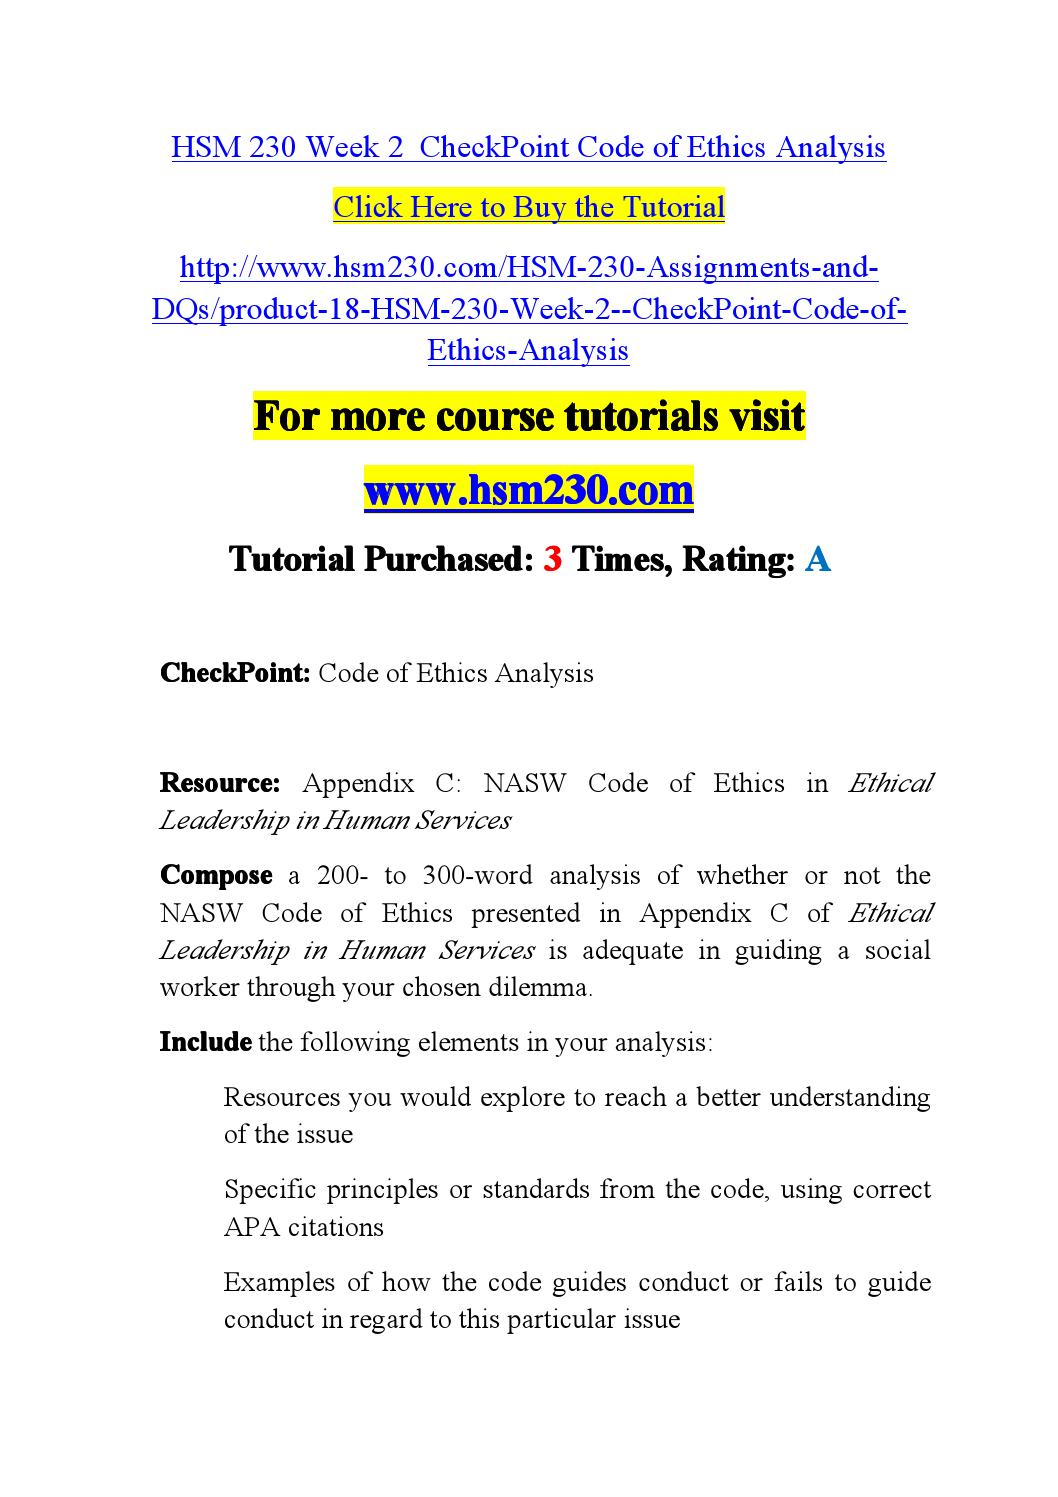 Hsm 230 week 2 checkpoint code of ethics analysis by online2014 - issuu